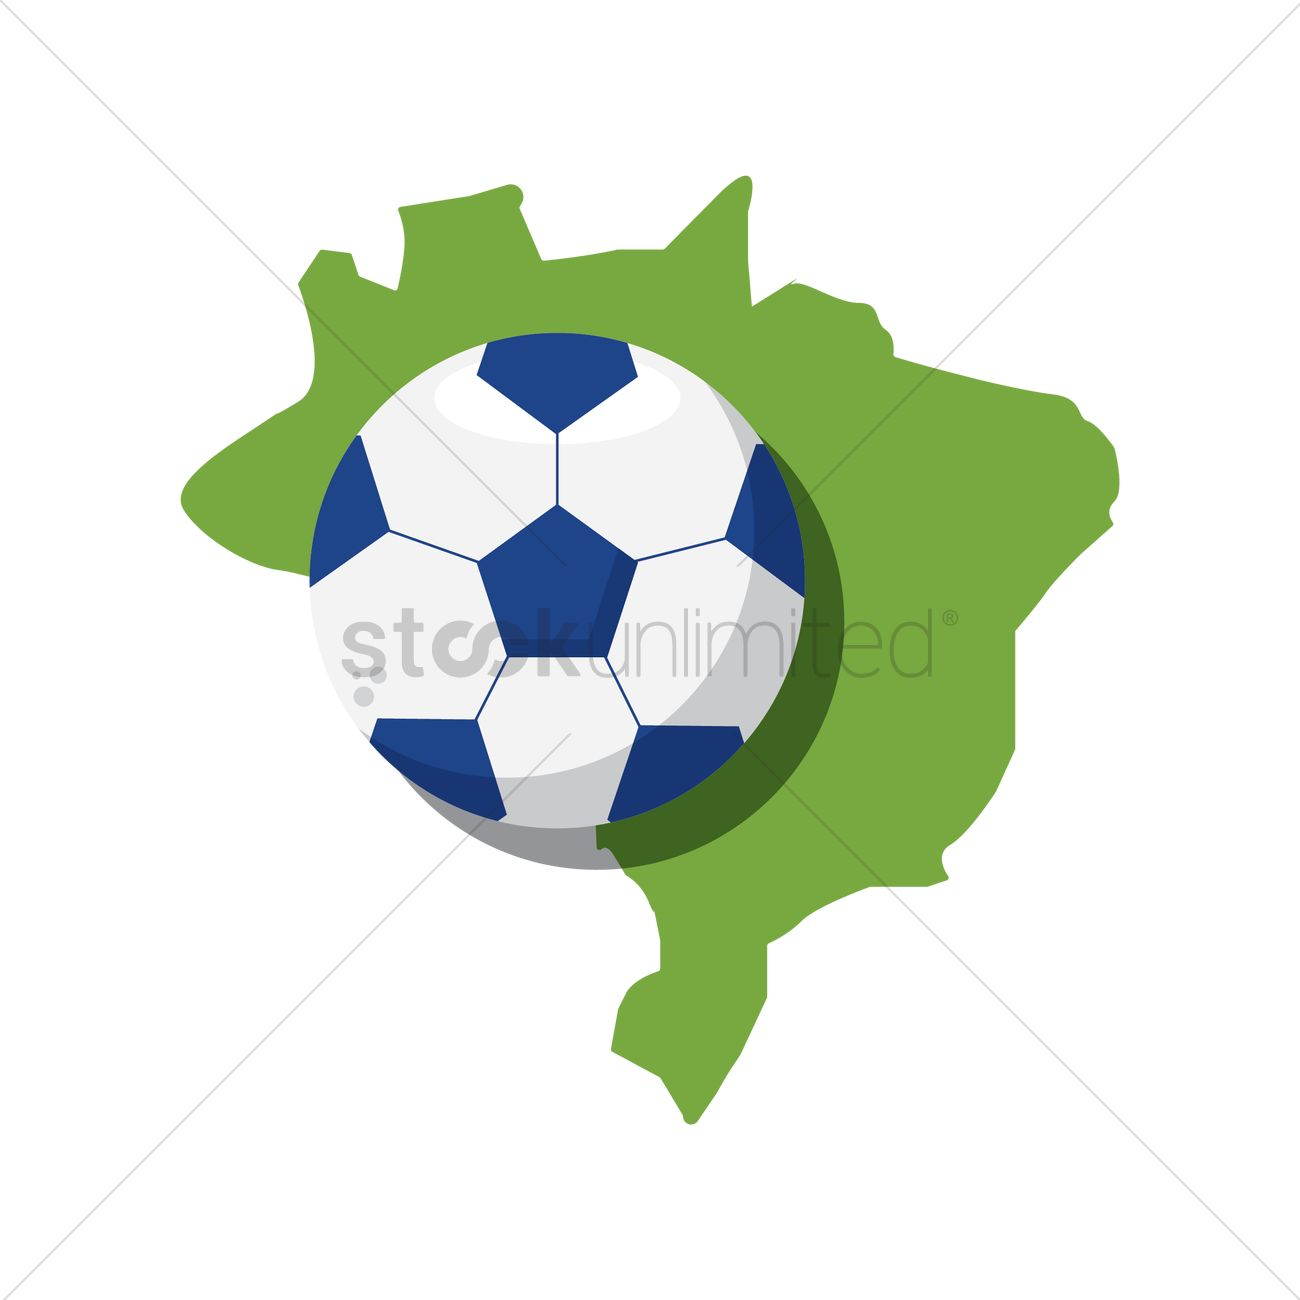 Brazil map with soccer ball vector image 1571993 stockunlimited brazil map with soccer ball vector graphic gumiabroncs Gallery